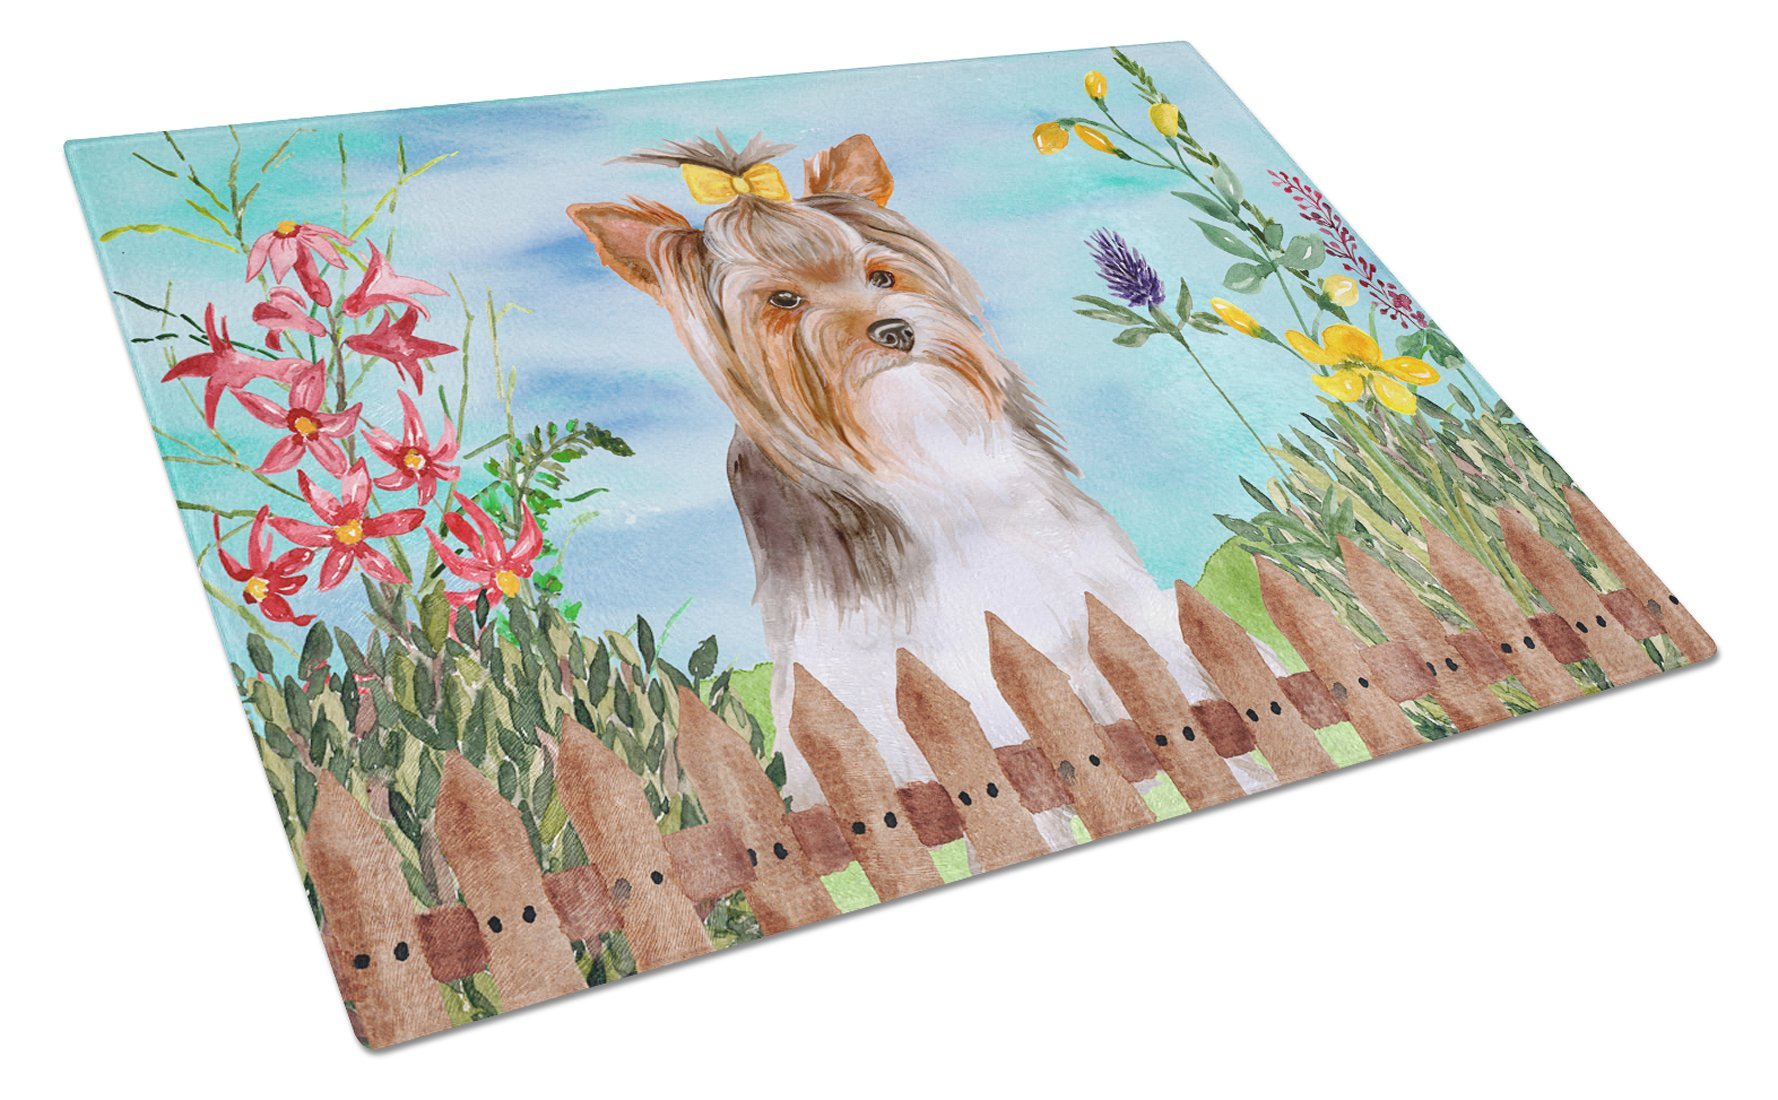 Yorkshire Terrier #2 Spring Glass Cutting Board Large CK1285LCB by Caroline's Treasures